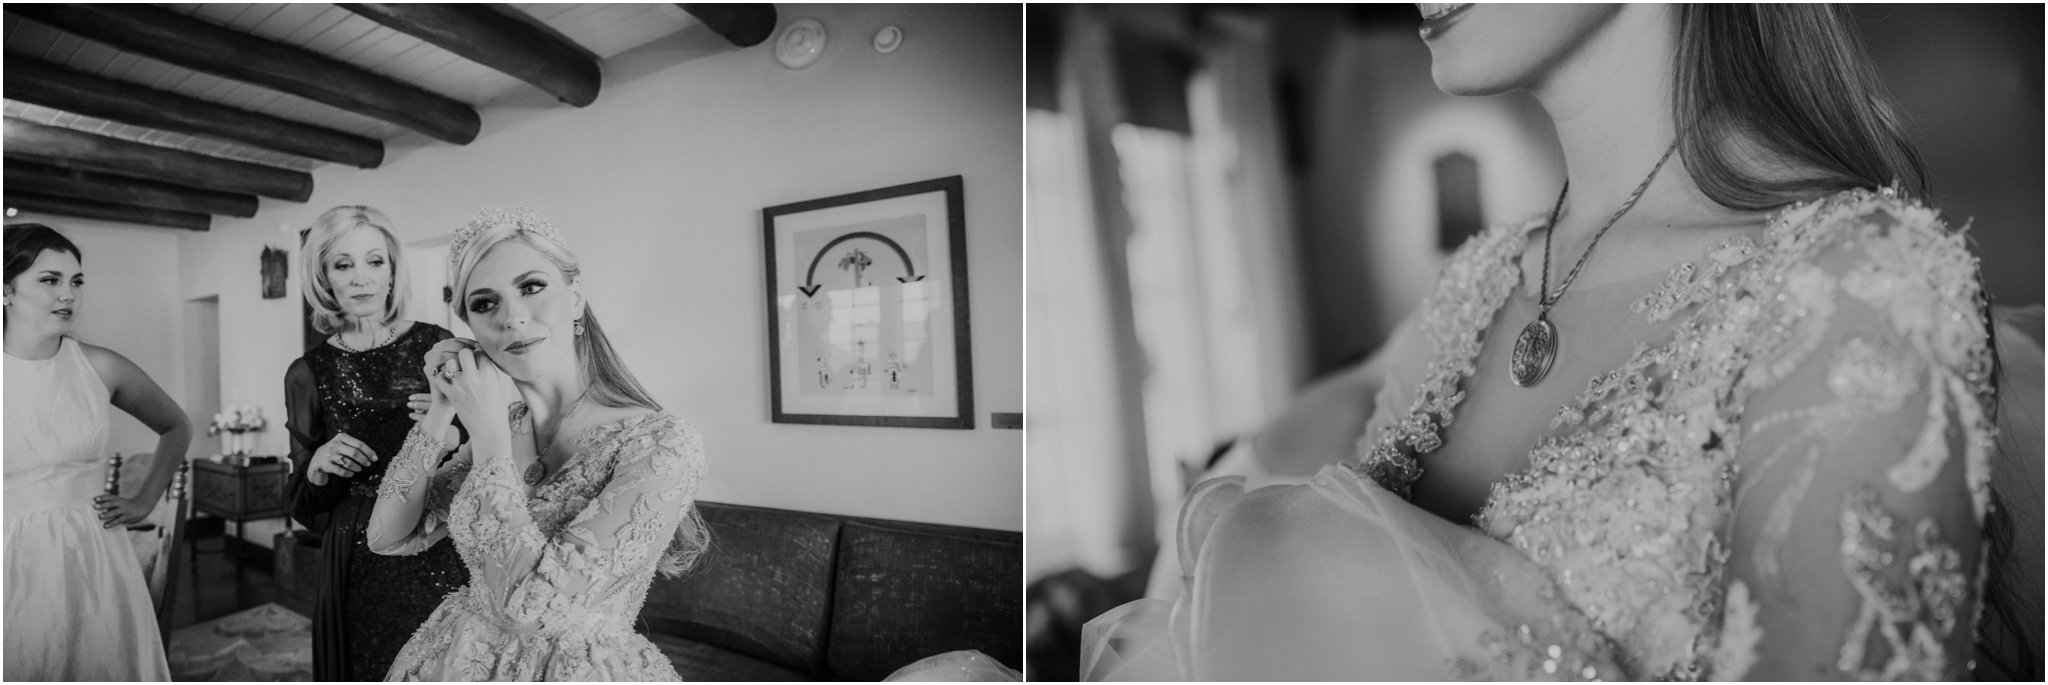 0010La Fonda Weddings Blue Rose Photography Studios